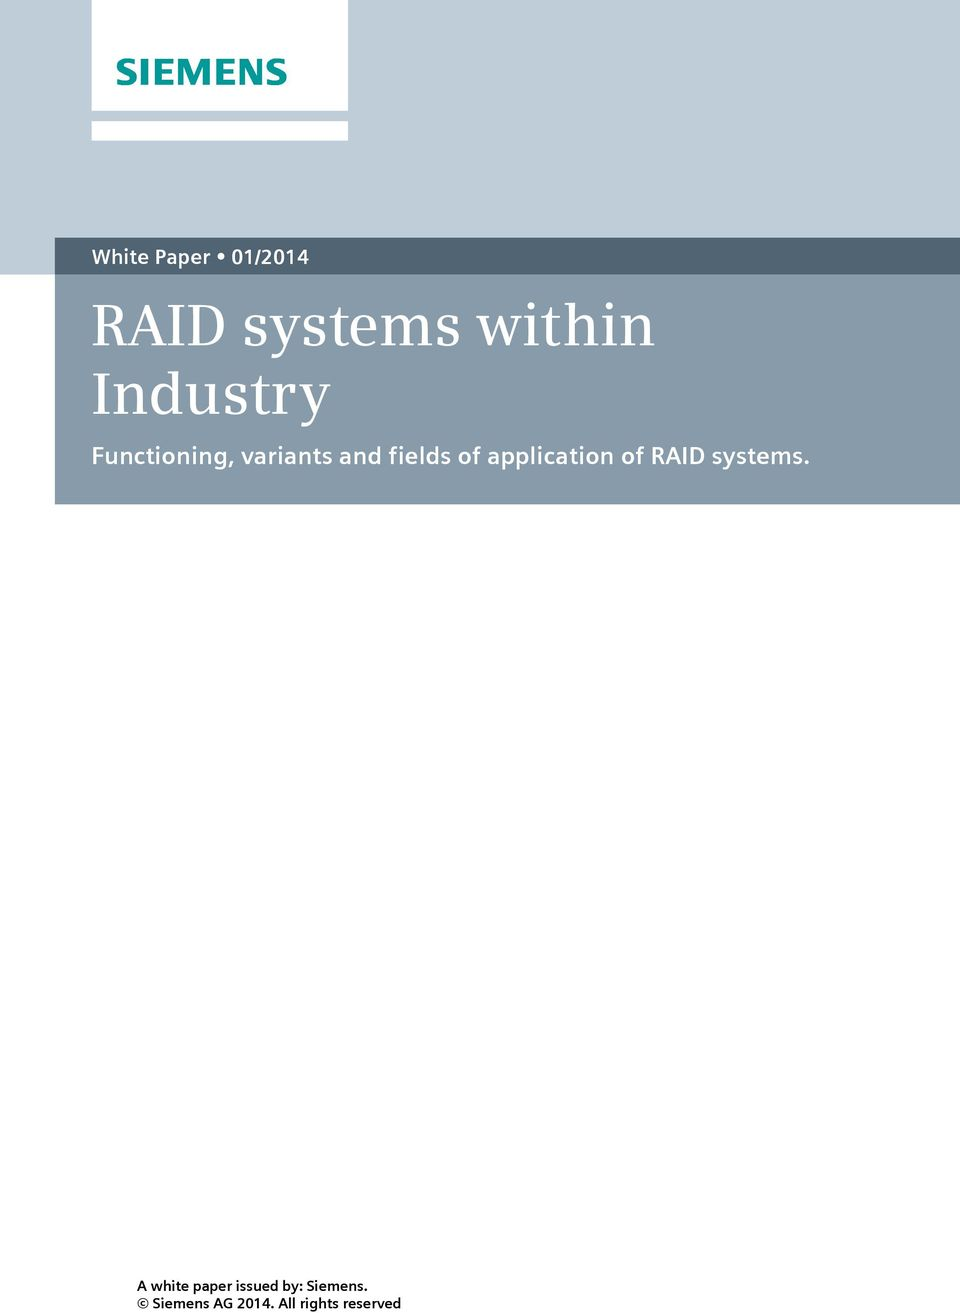 application of RAID systems.